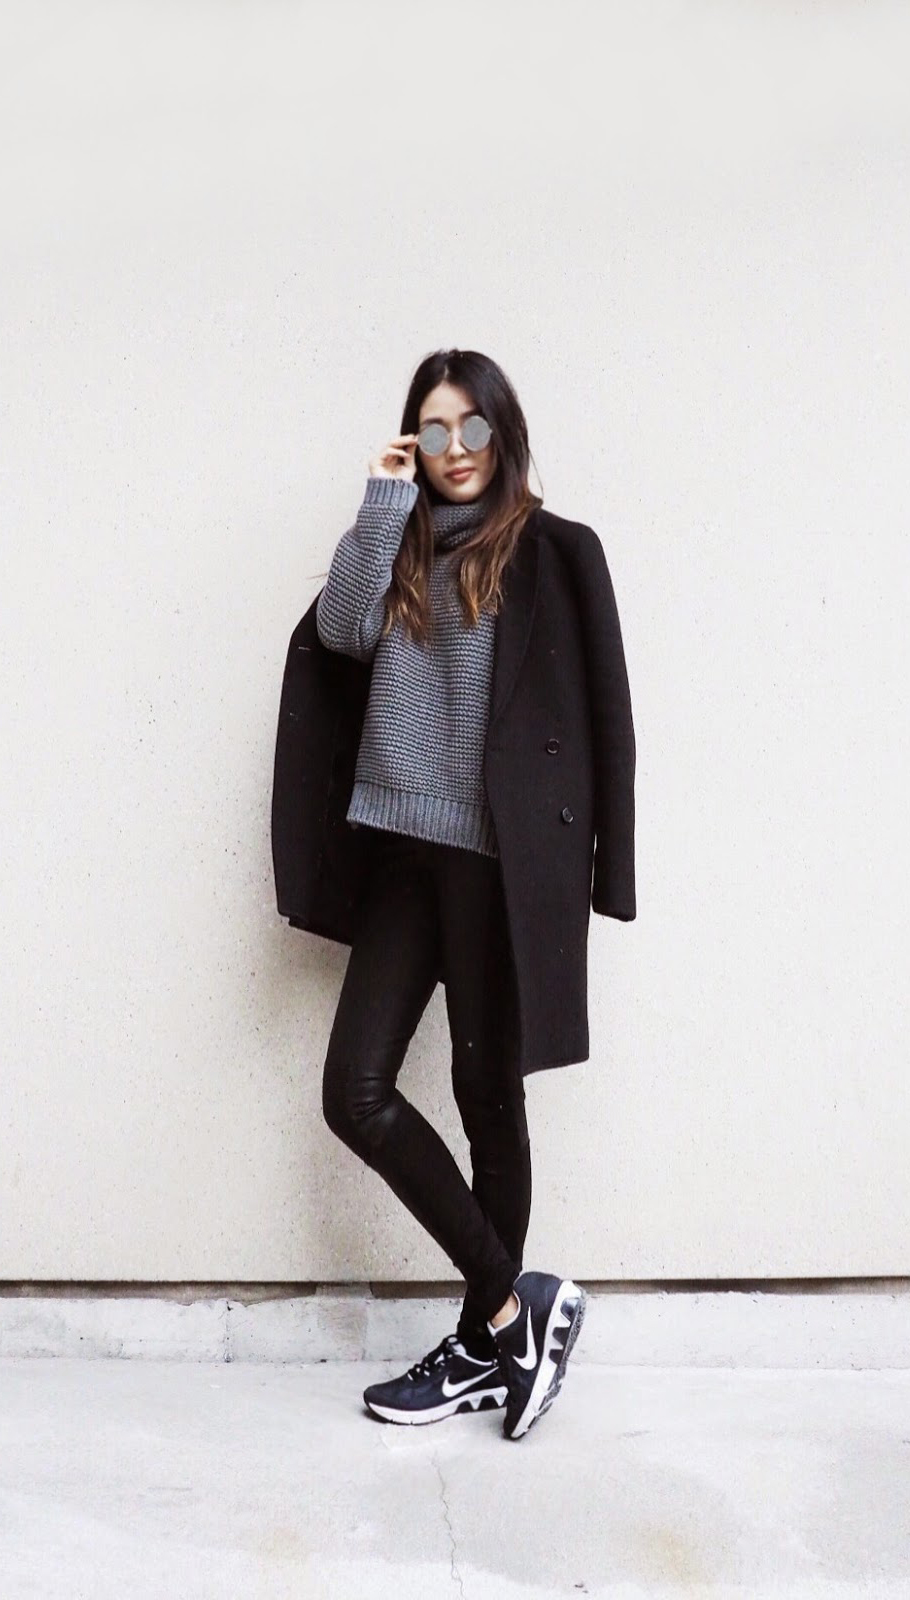 Turtleneck Trend: Cher Bai is wearing a grey heavy knit turtleneck from Zara